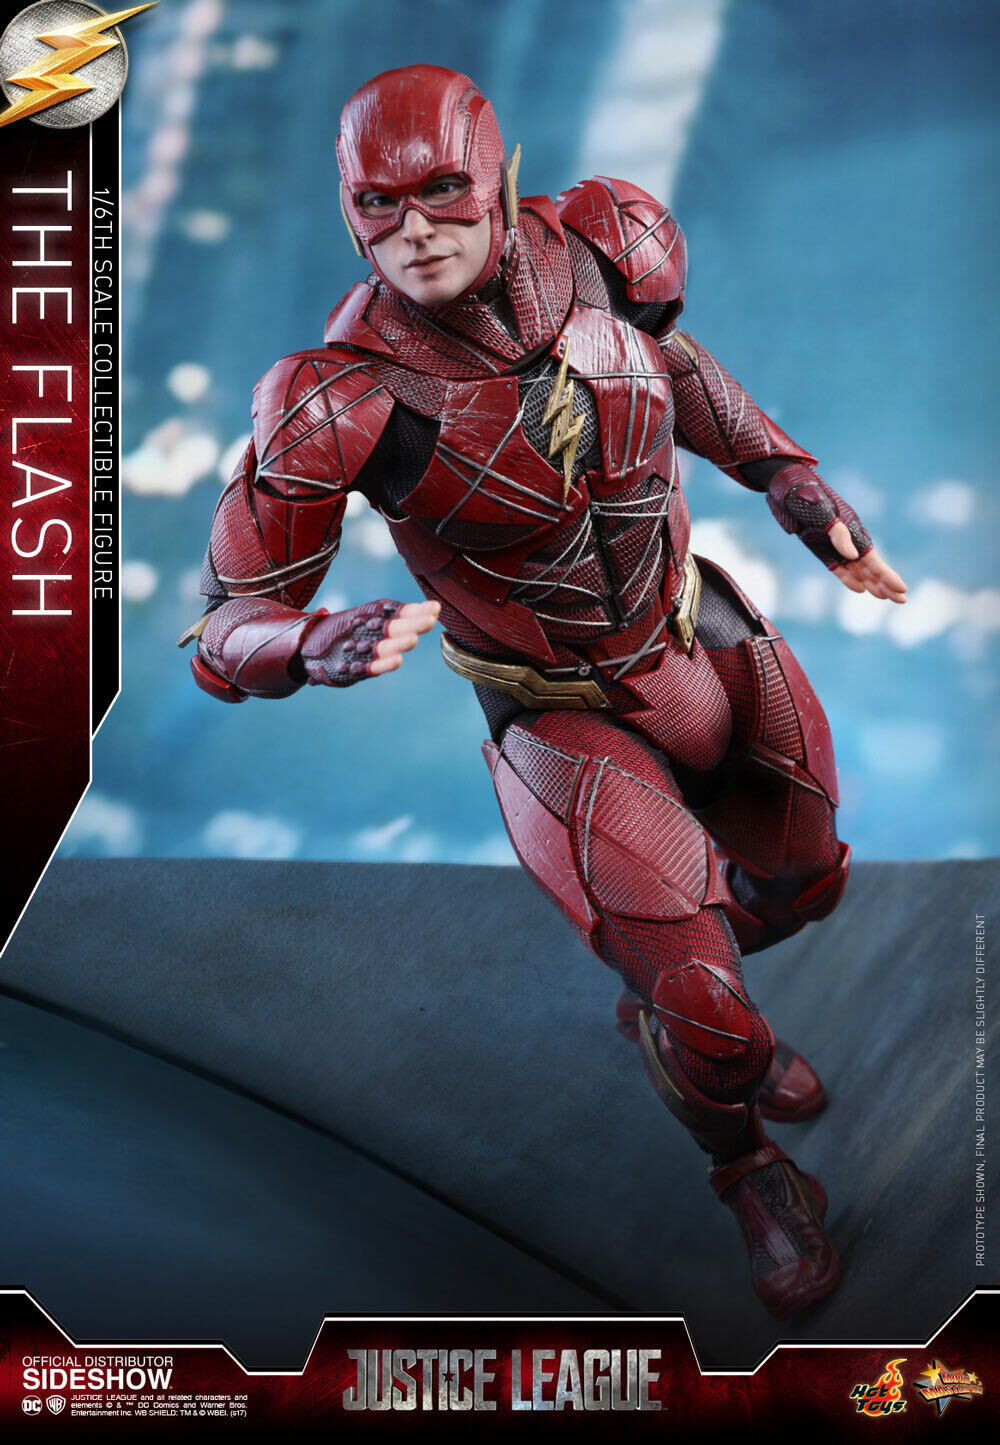 HOT TOYS The Flash Justice  League 1 6 Scale Figure MINT nouveau IN BOX  venez choisir votre propre style sportif